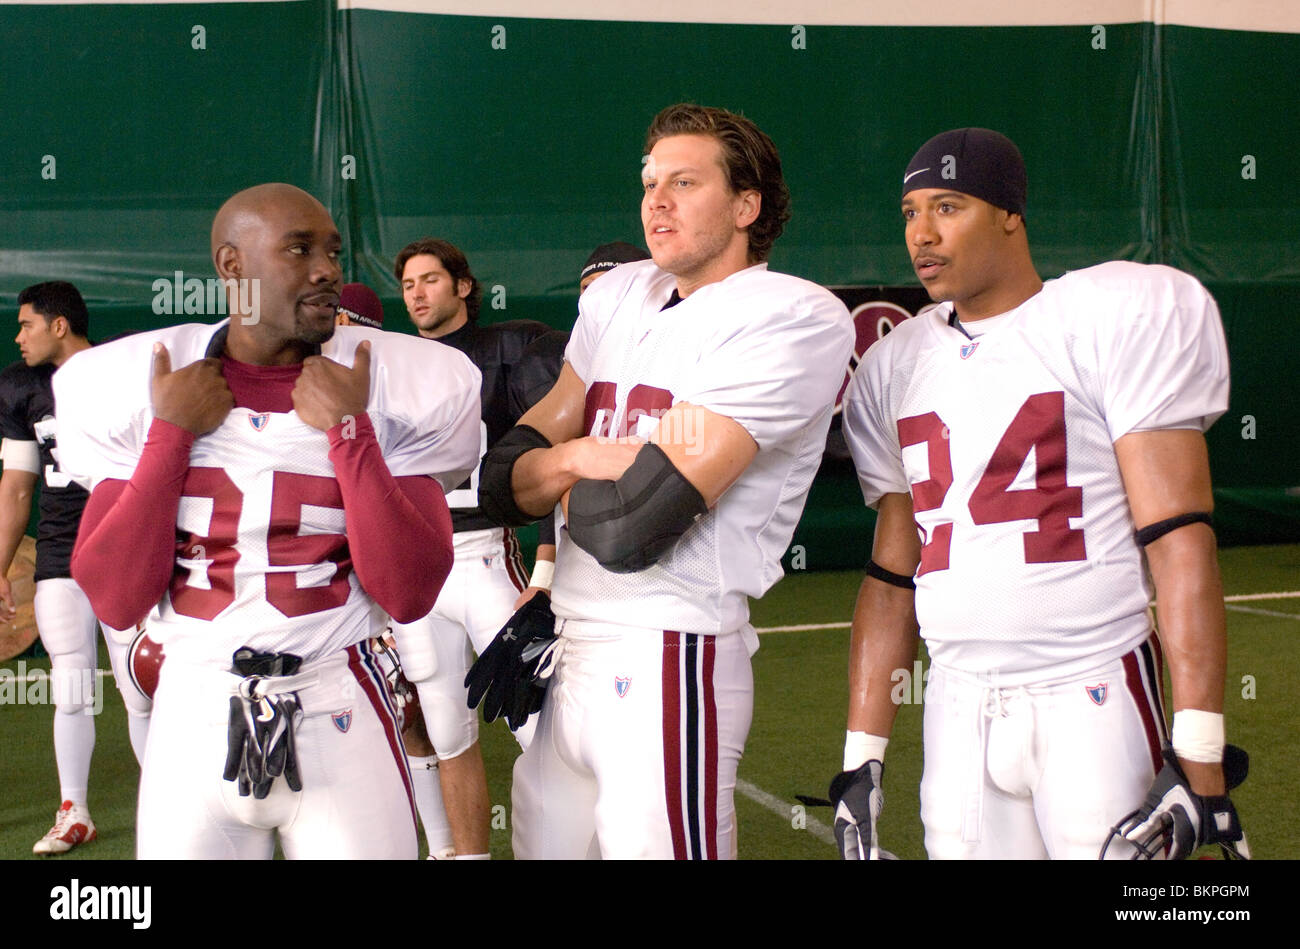 THE GAME PLAN (2007) MORRIS CHESTNUT, HAYES MACARTHUR, BRIAN WHITE ANDY FICKMAN (DIR) 015 - Stock Image